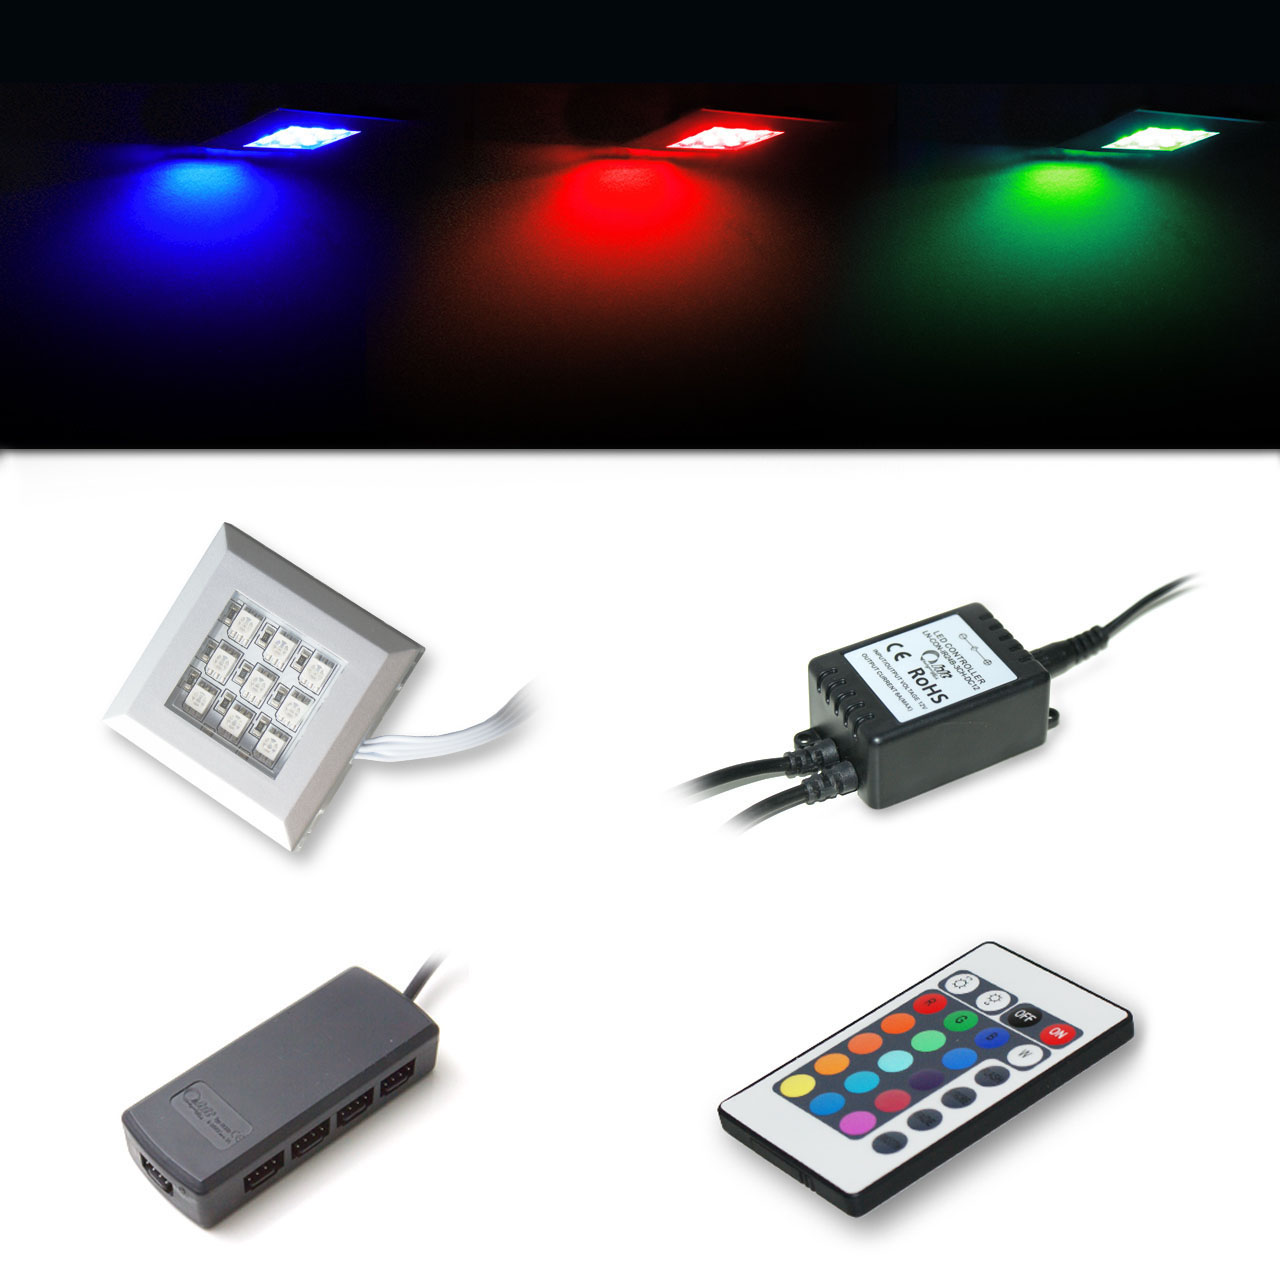 led rgb down light spot furniture lights set remote control rgb multicolor ebay. Black Bedroom Furniture Sets. Home Design Ideas